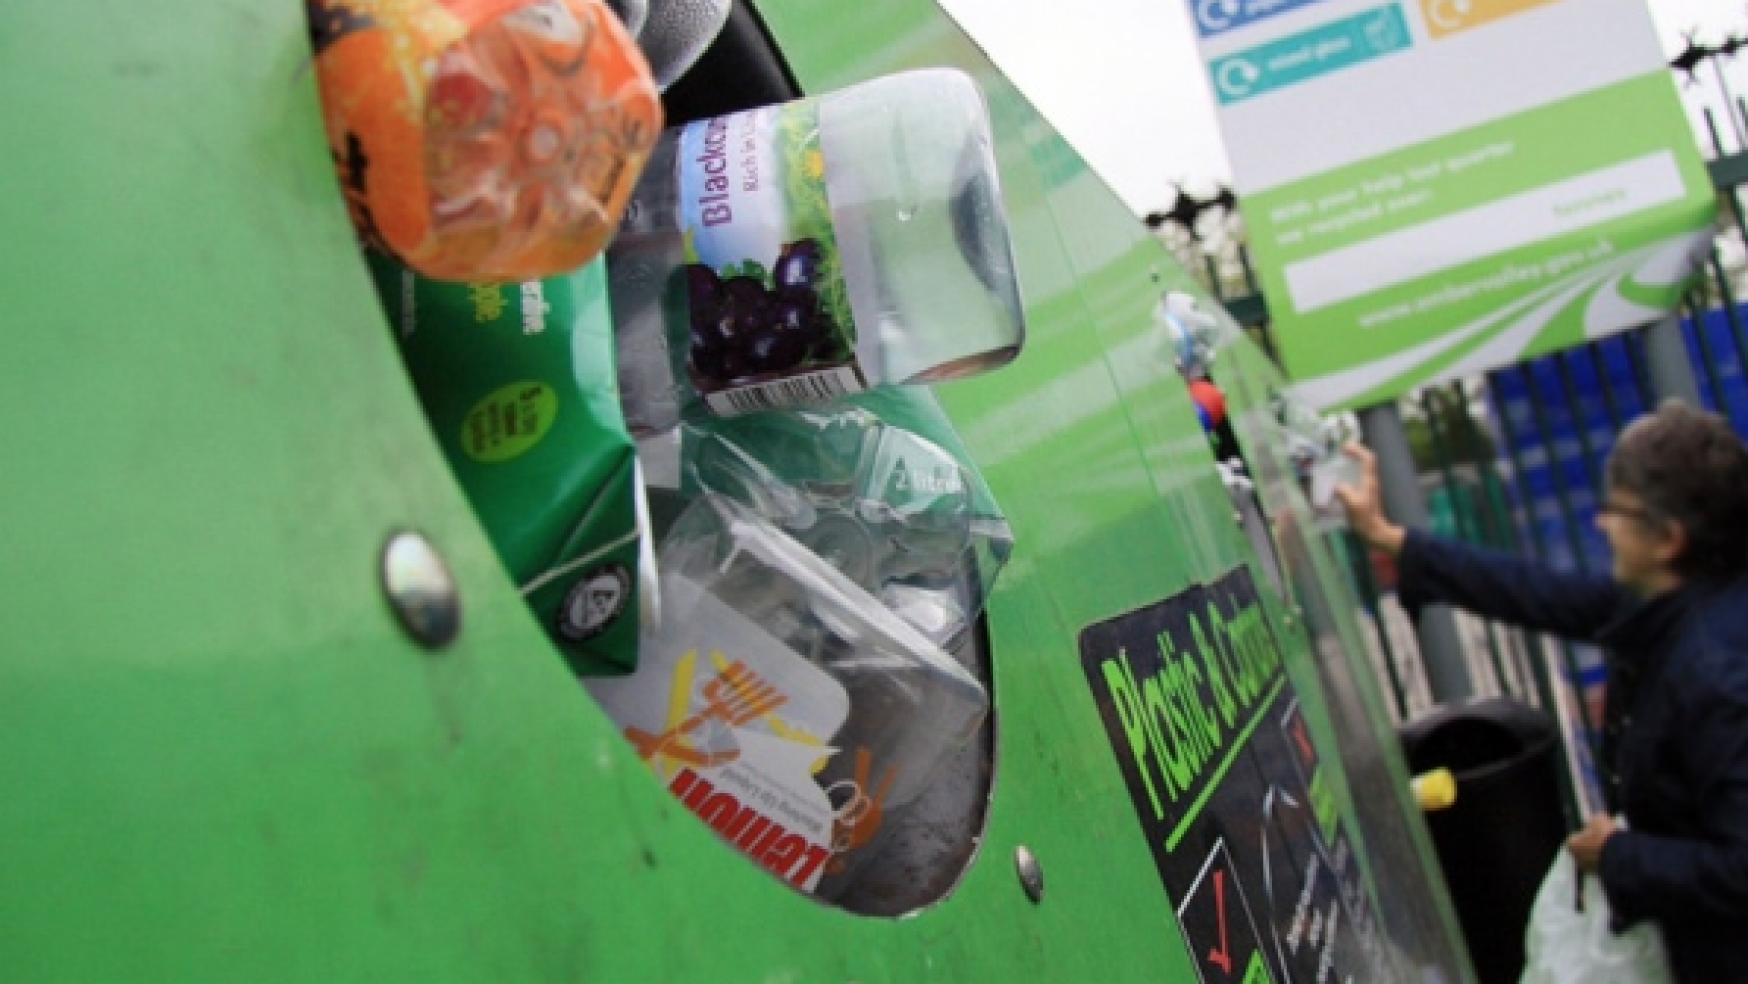 Derbyshire Dales reviews policy on recycling